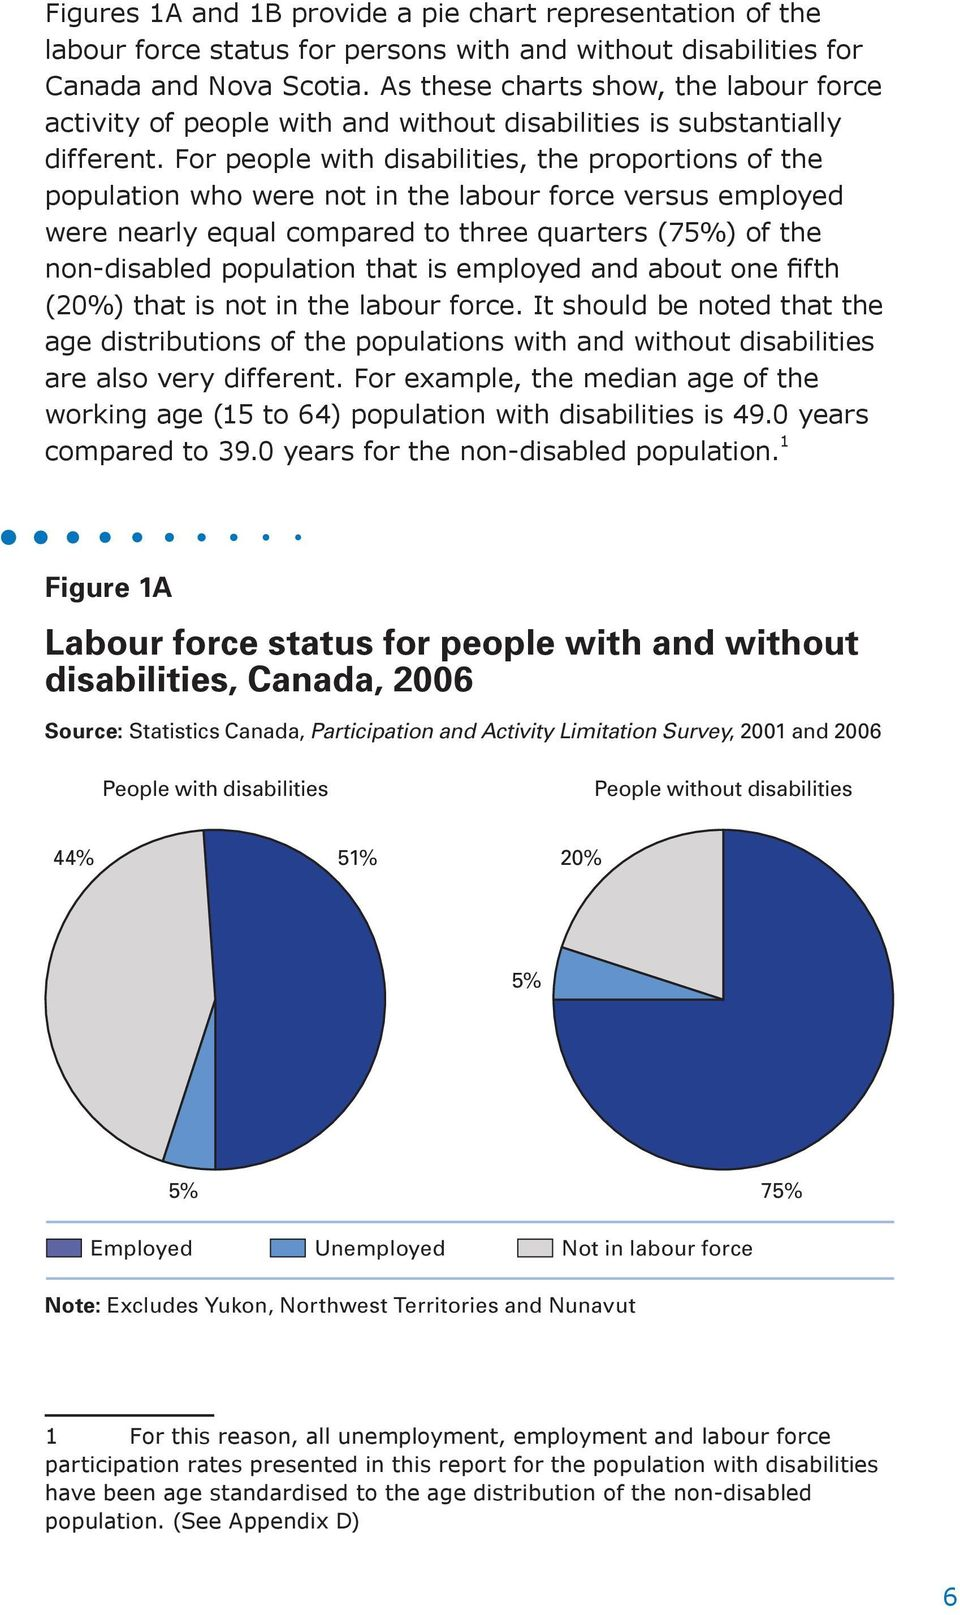 For people with disabilities, the proportions of the population who were not in the labour force versus employed were nearly equal compared to three quarters (75%) of the non-disabled population that